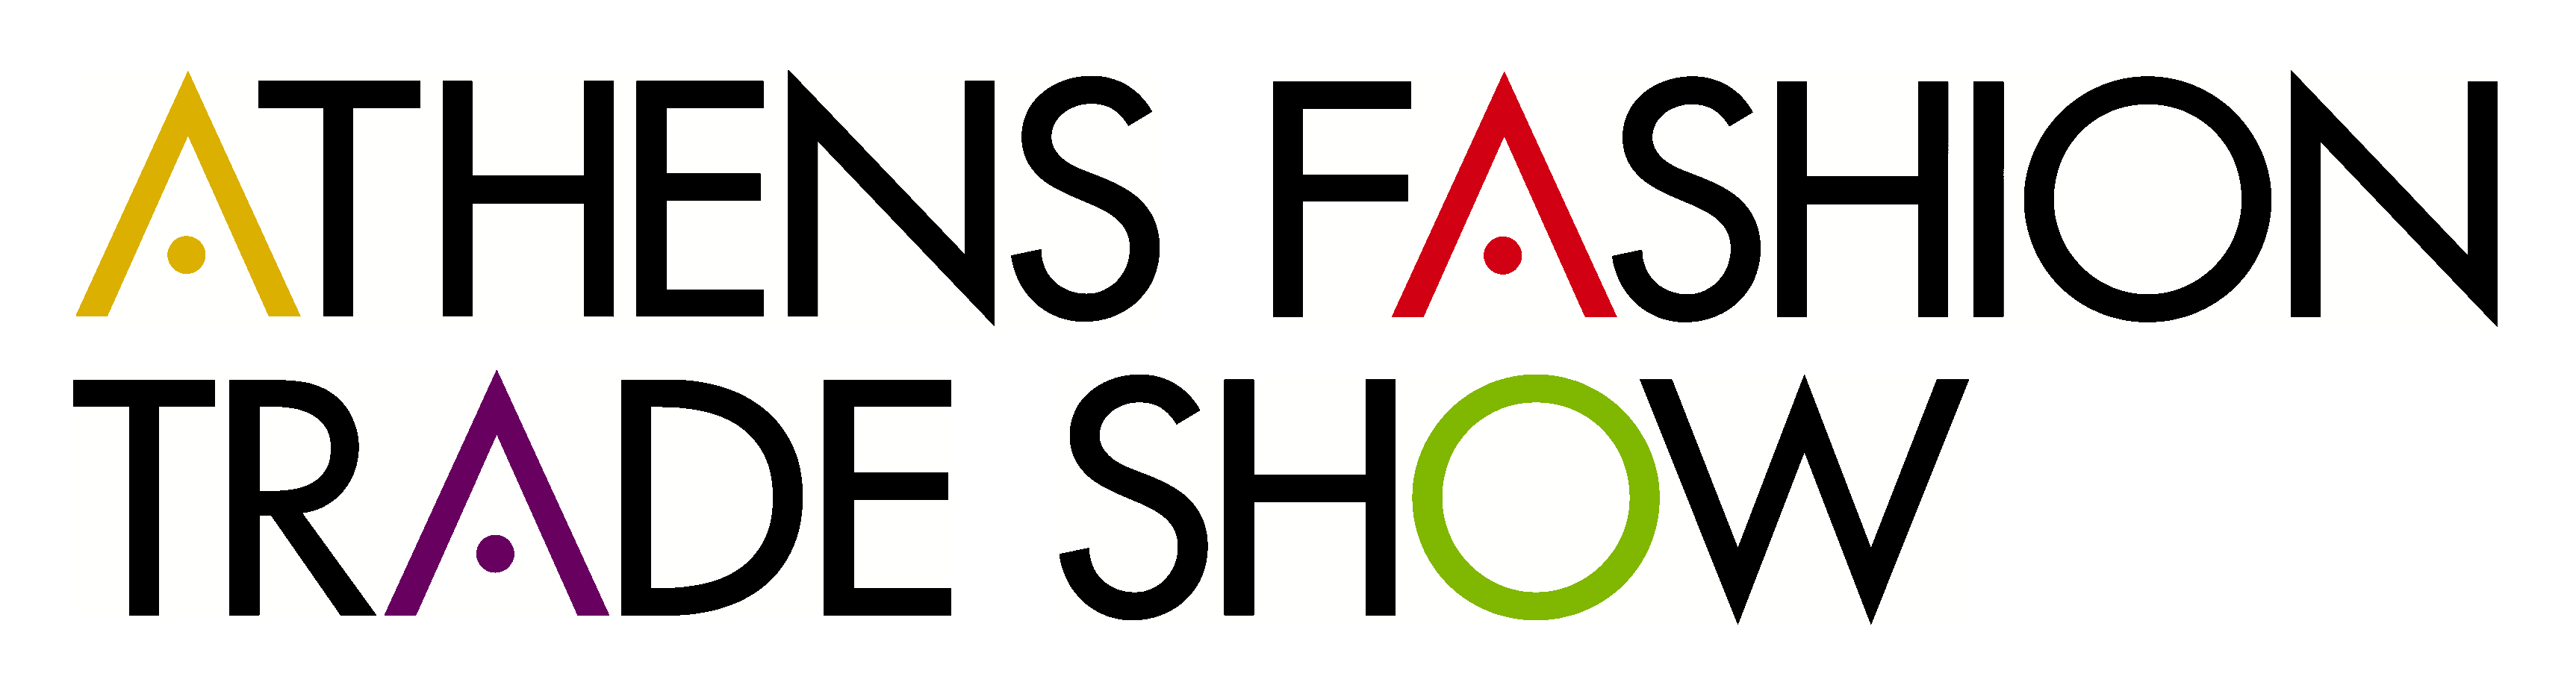 Athens Fashion Trade Show